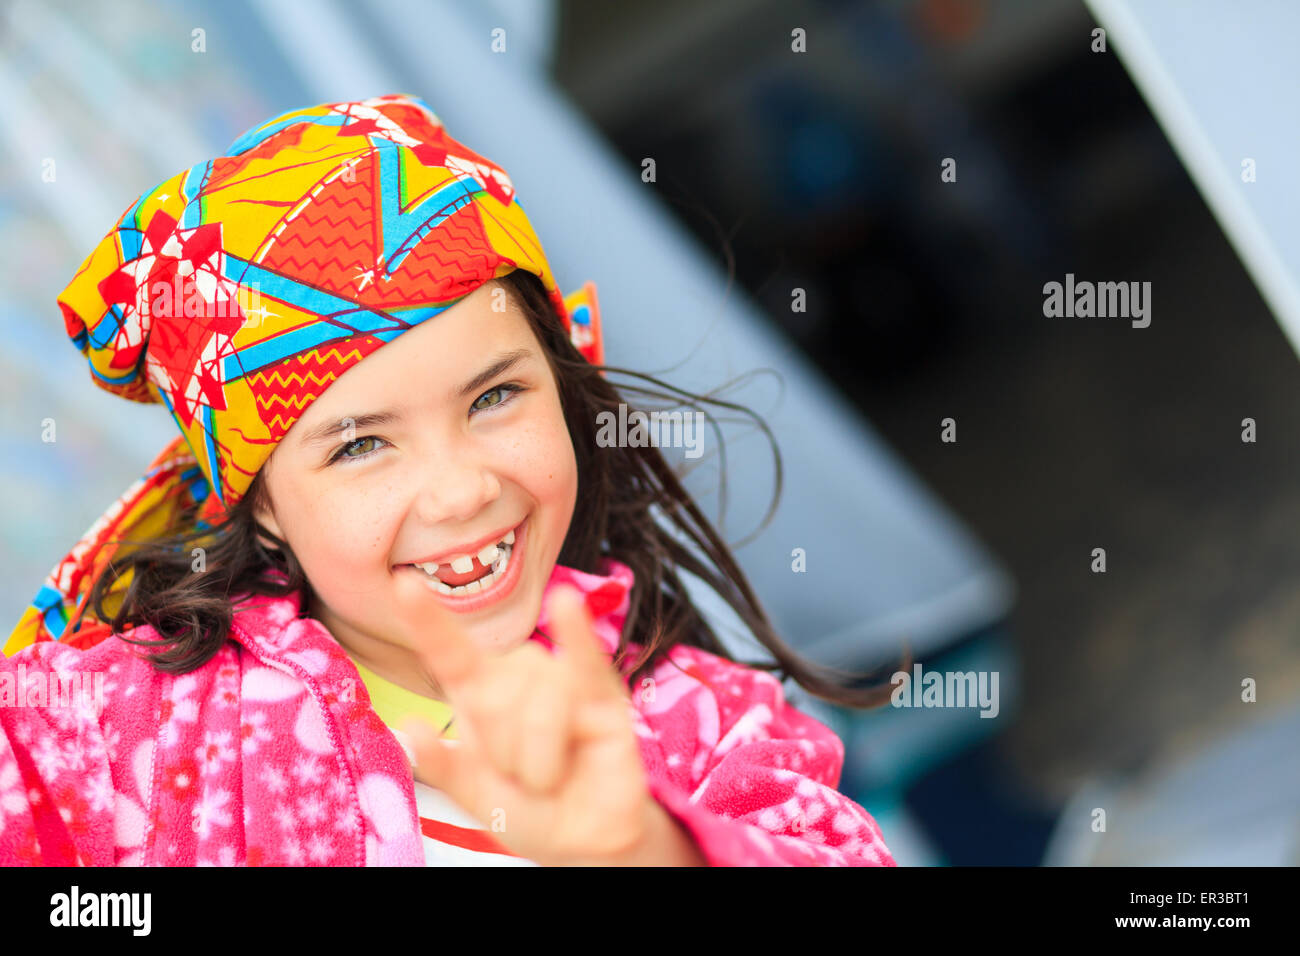 Portrait of a smiling girl gesturing horn sign Photo Stock